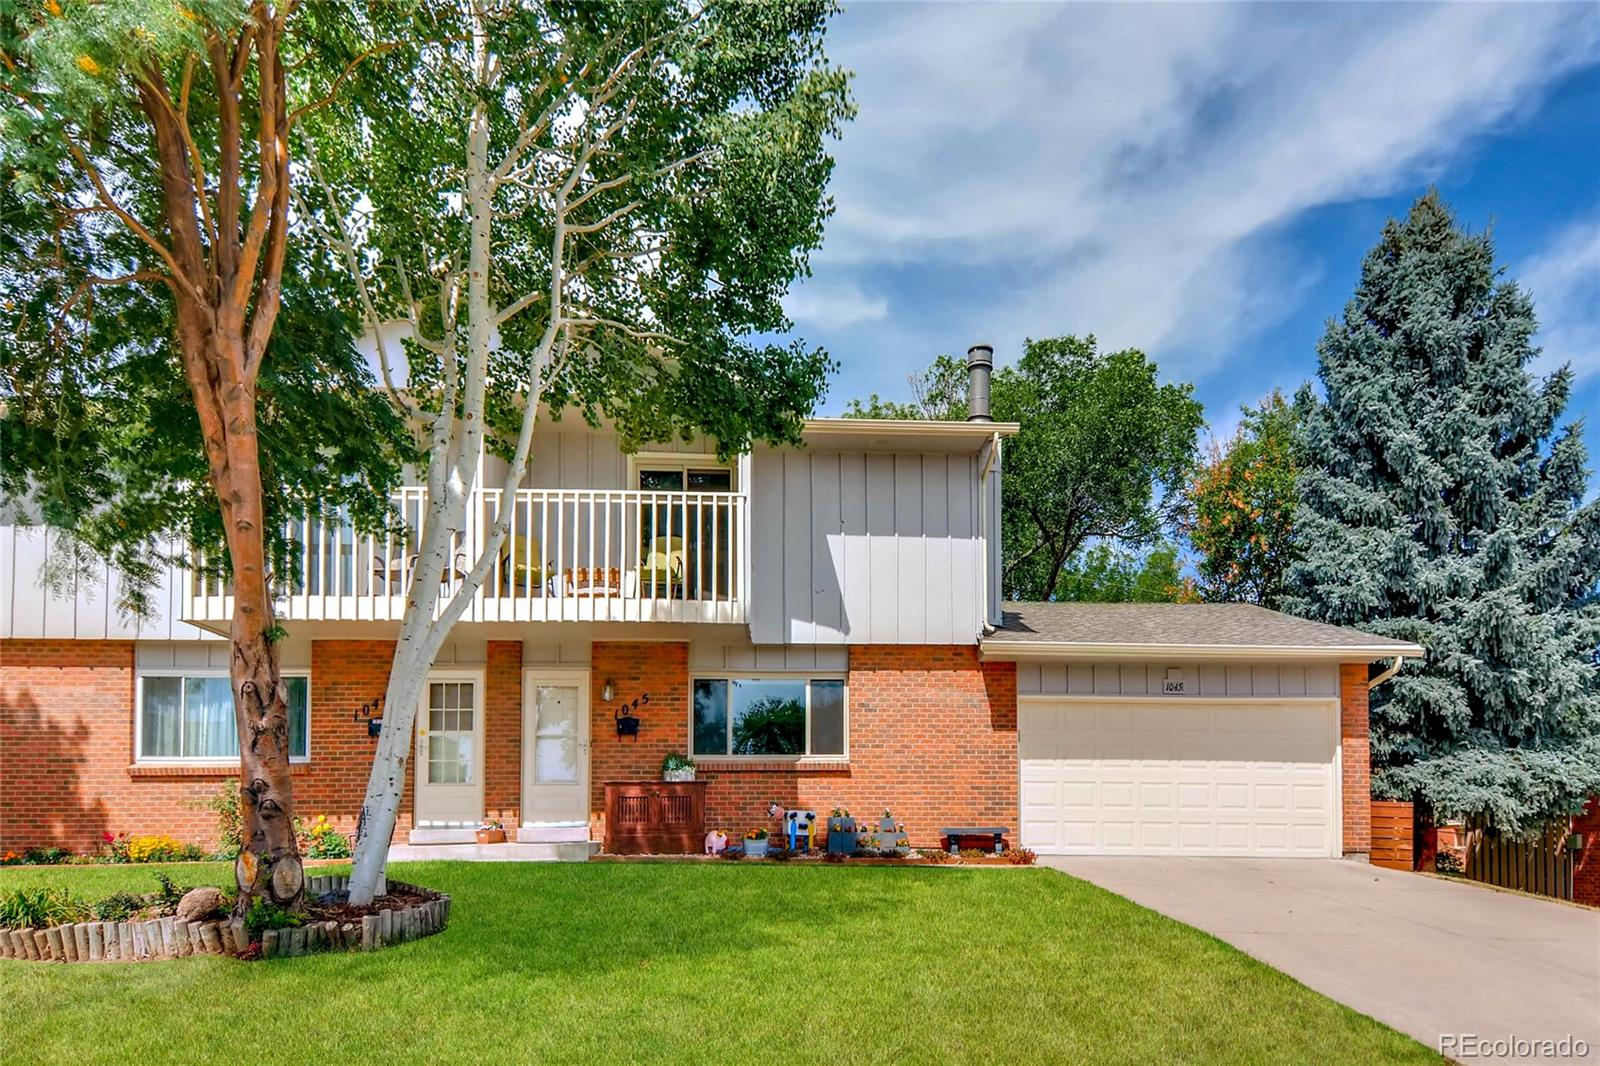 1045 S Alkire Street, Lakewood, CO 80228 - Lakewood, CO real estate listing